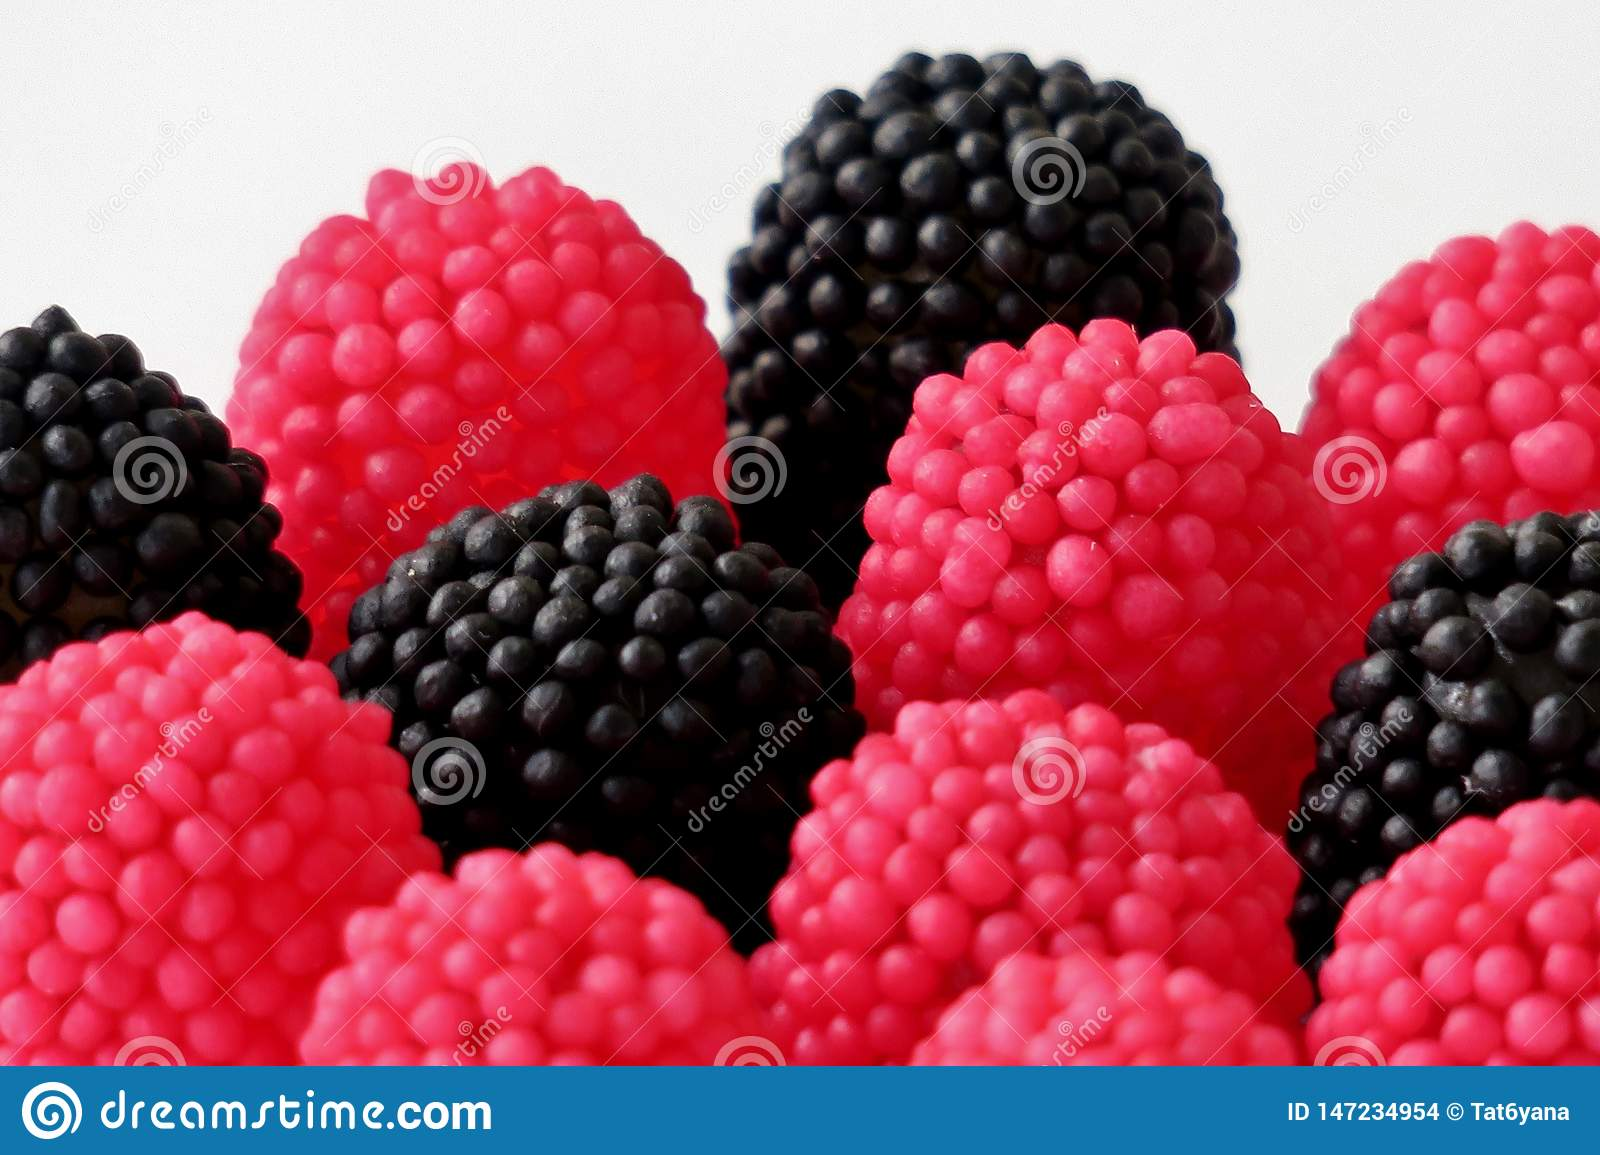 Jelly candies in the form of raspberries, red and black on a white background